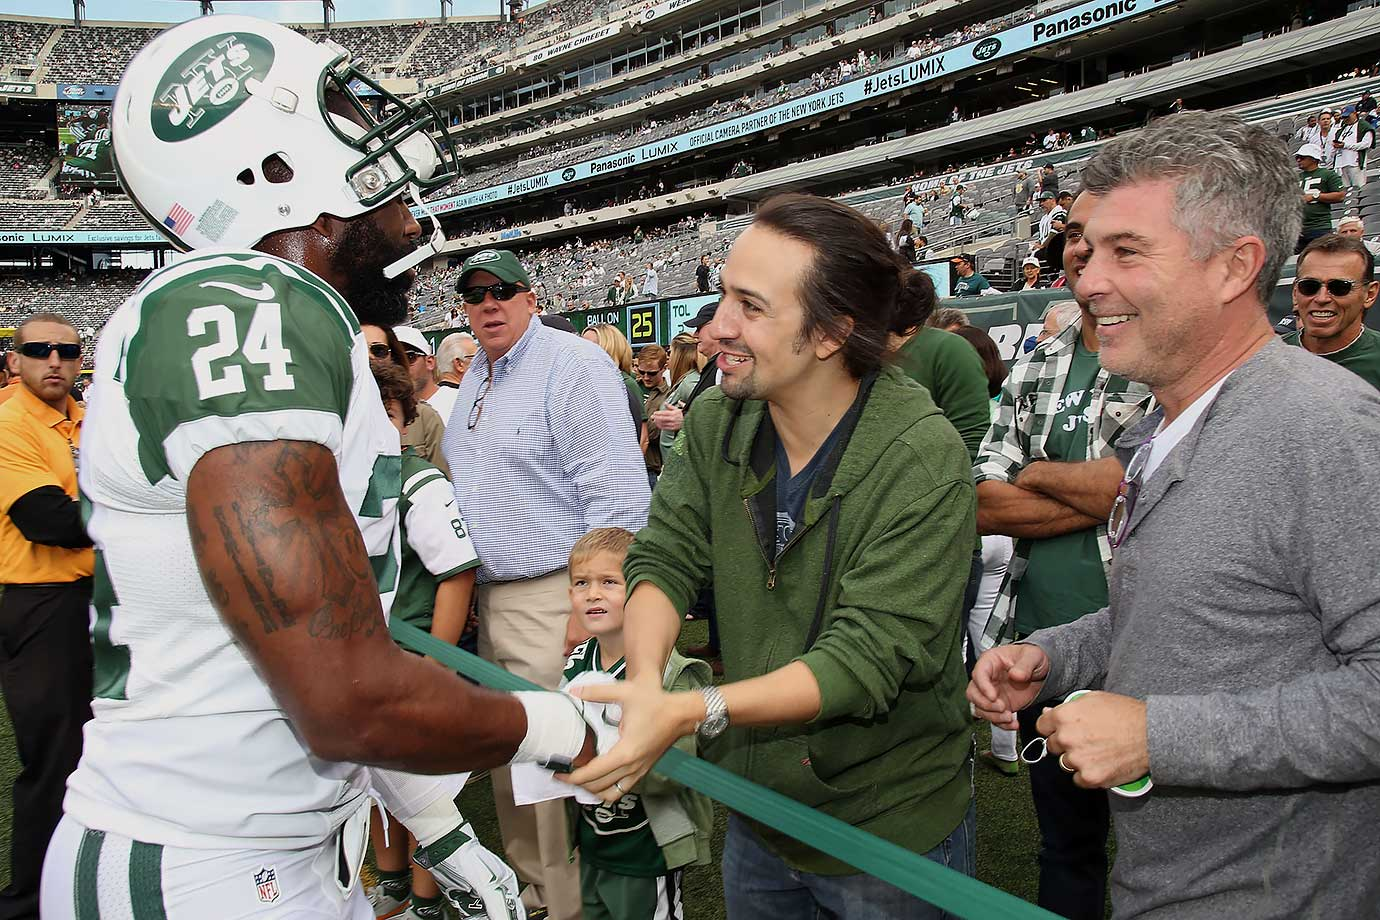 New York Jets vs. Philadelphia Eagles on Sept. 27, 2015 at MetLife Stadium in East Rutherford, N.J.